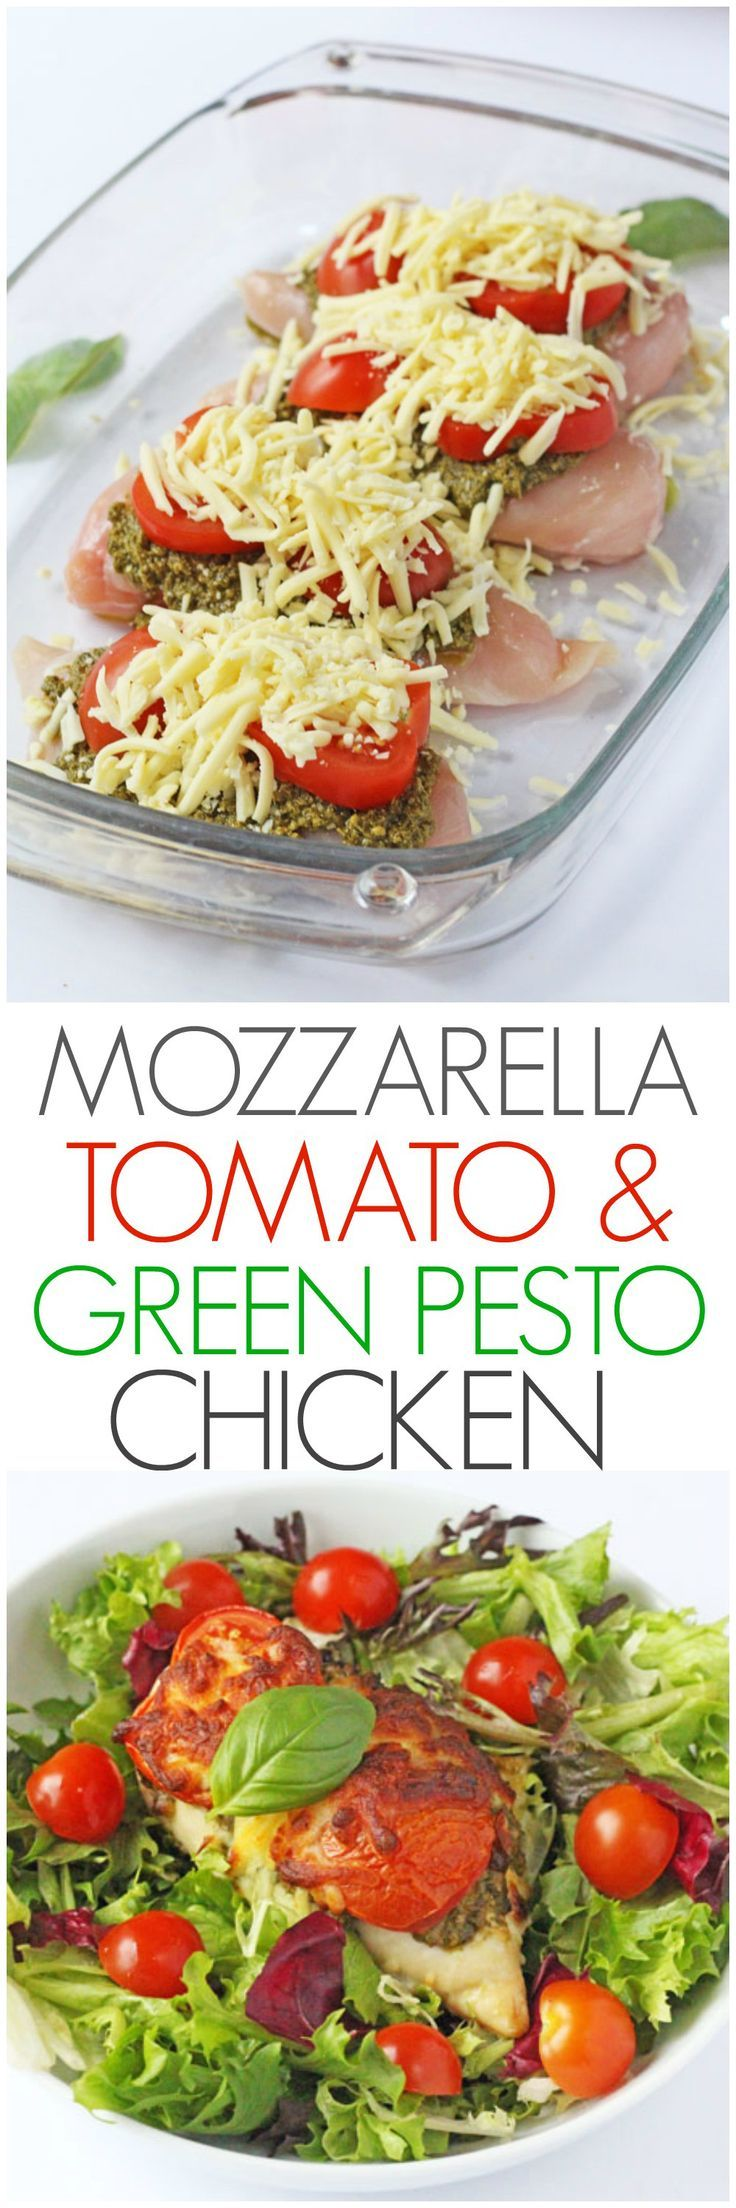 A delicious and easy mid week meal. Just 3 minutes prep and 30 minutes in the oven to make this Mozzarella, Tomato & Basil Pesto Chicken - can stuff chicken instead of on top